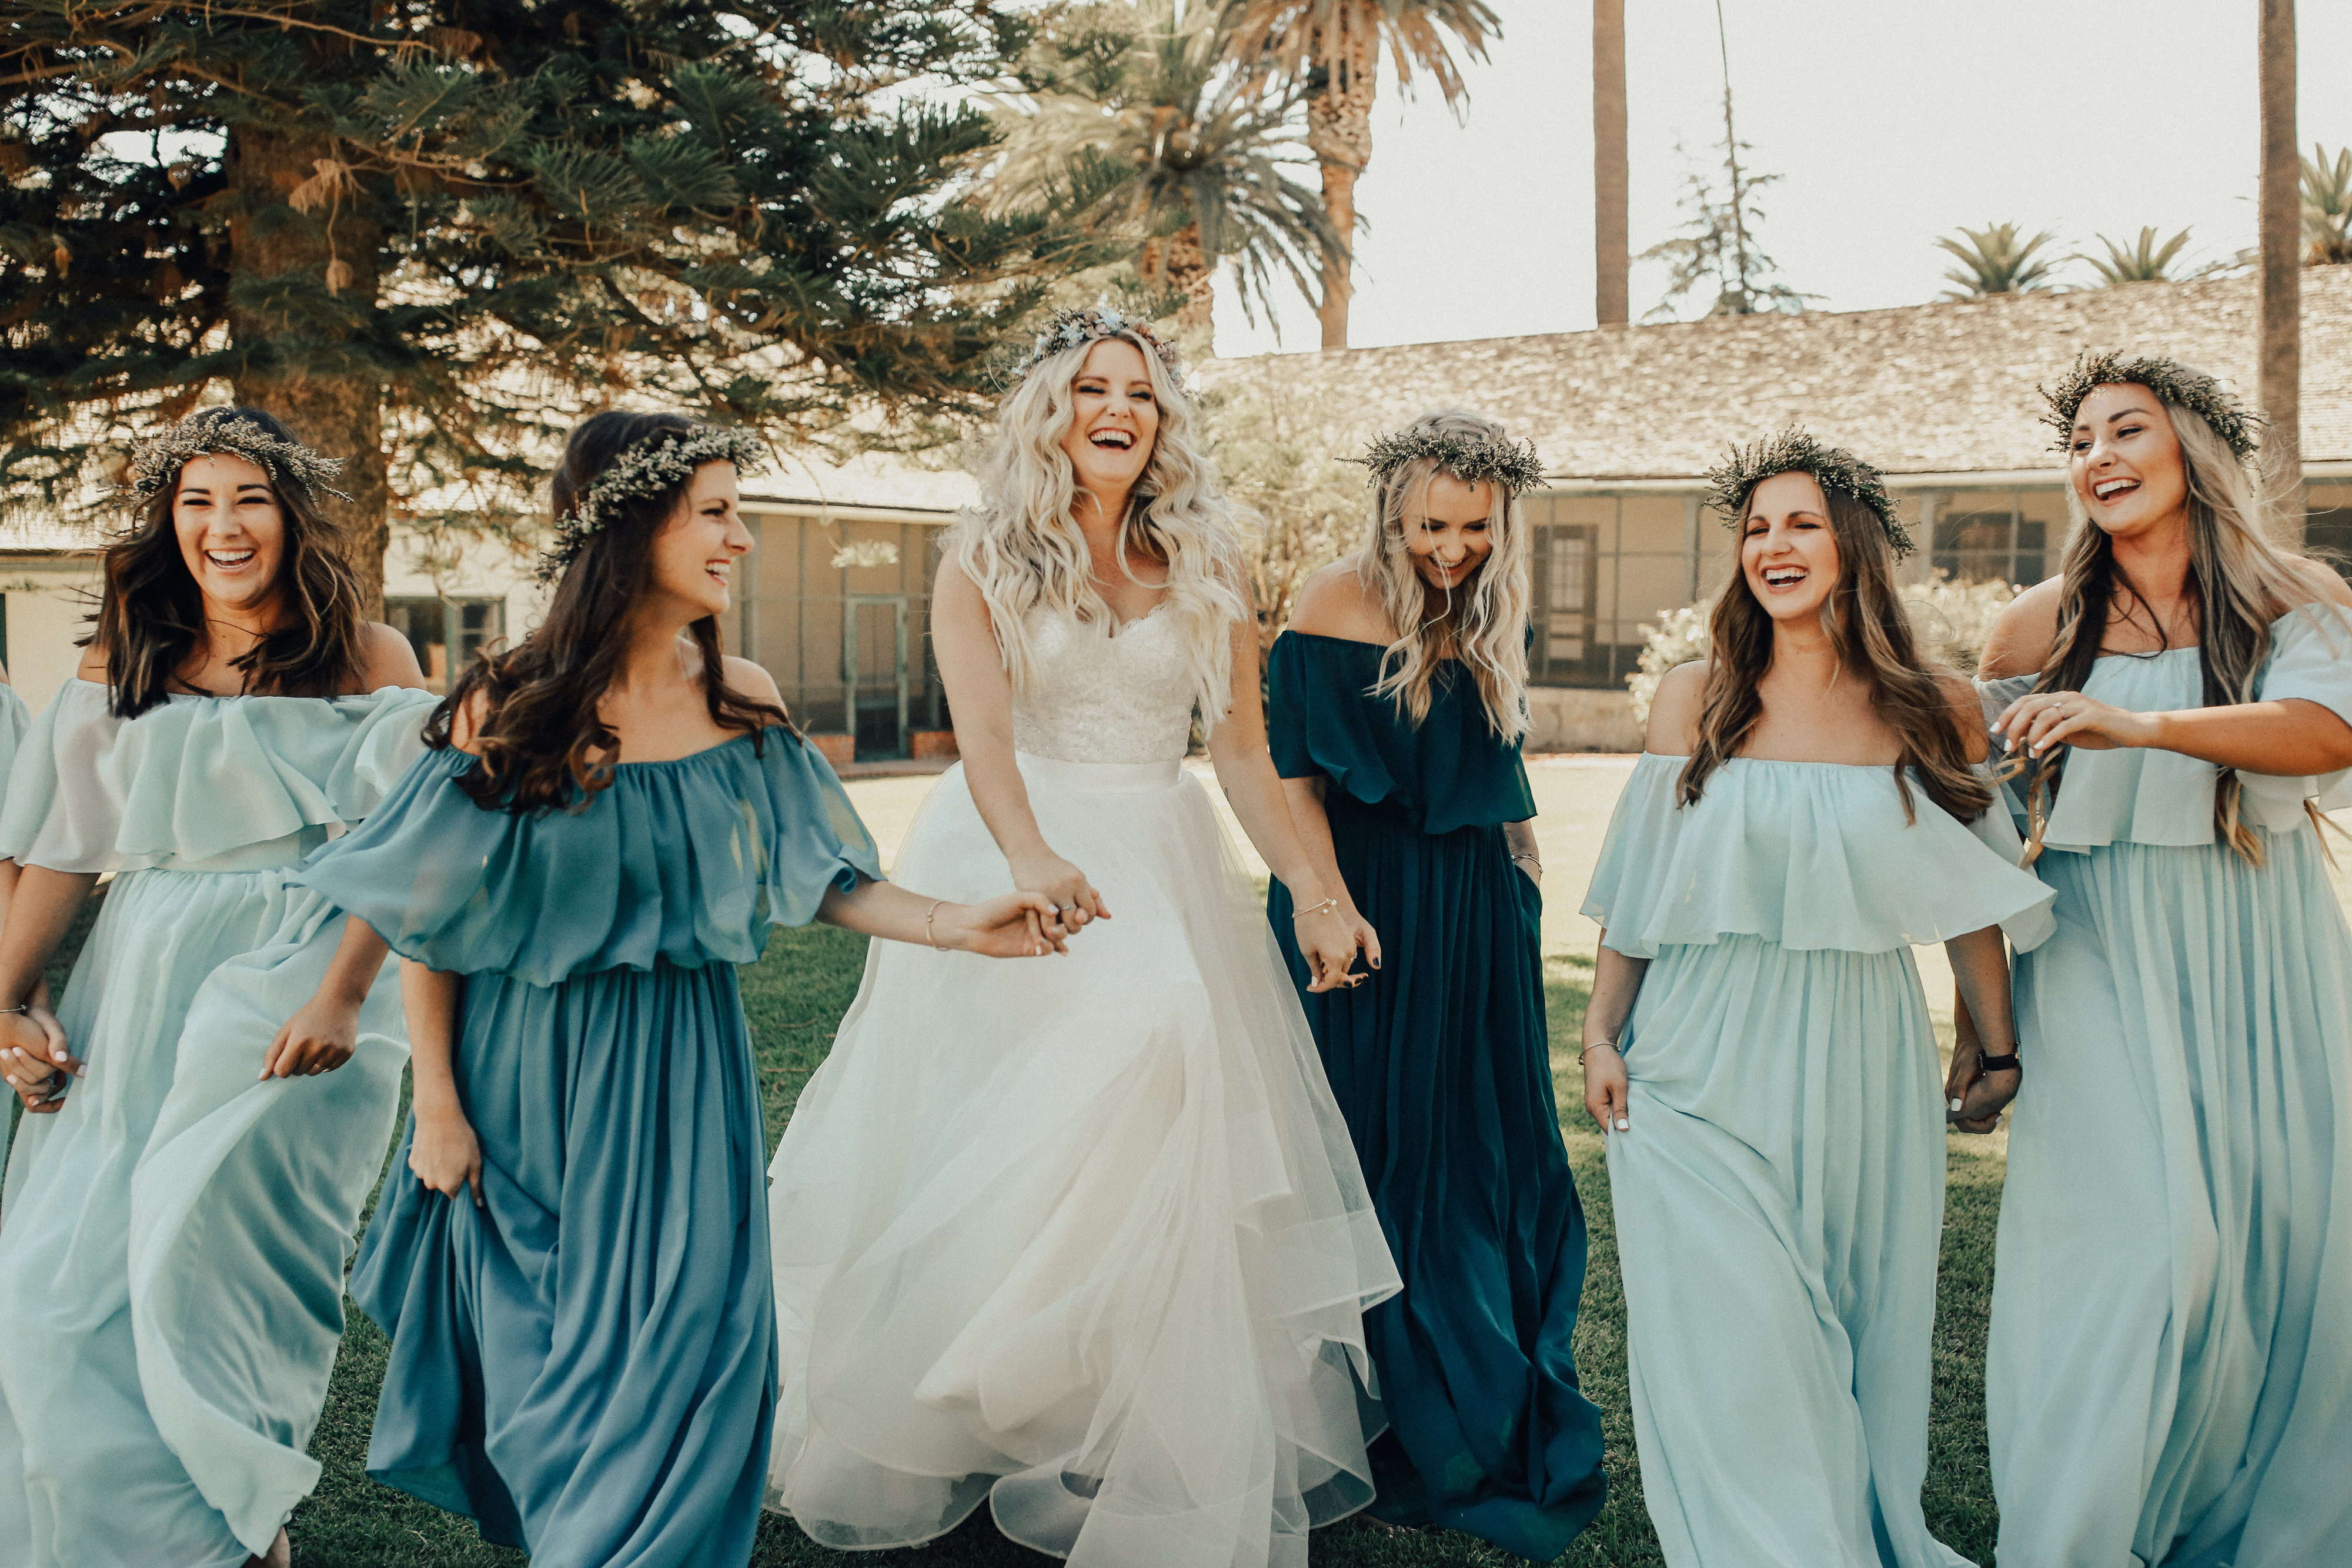 Bridesmaids in blue and green chiffon abigail revelry dresses laugh on wedding day